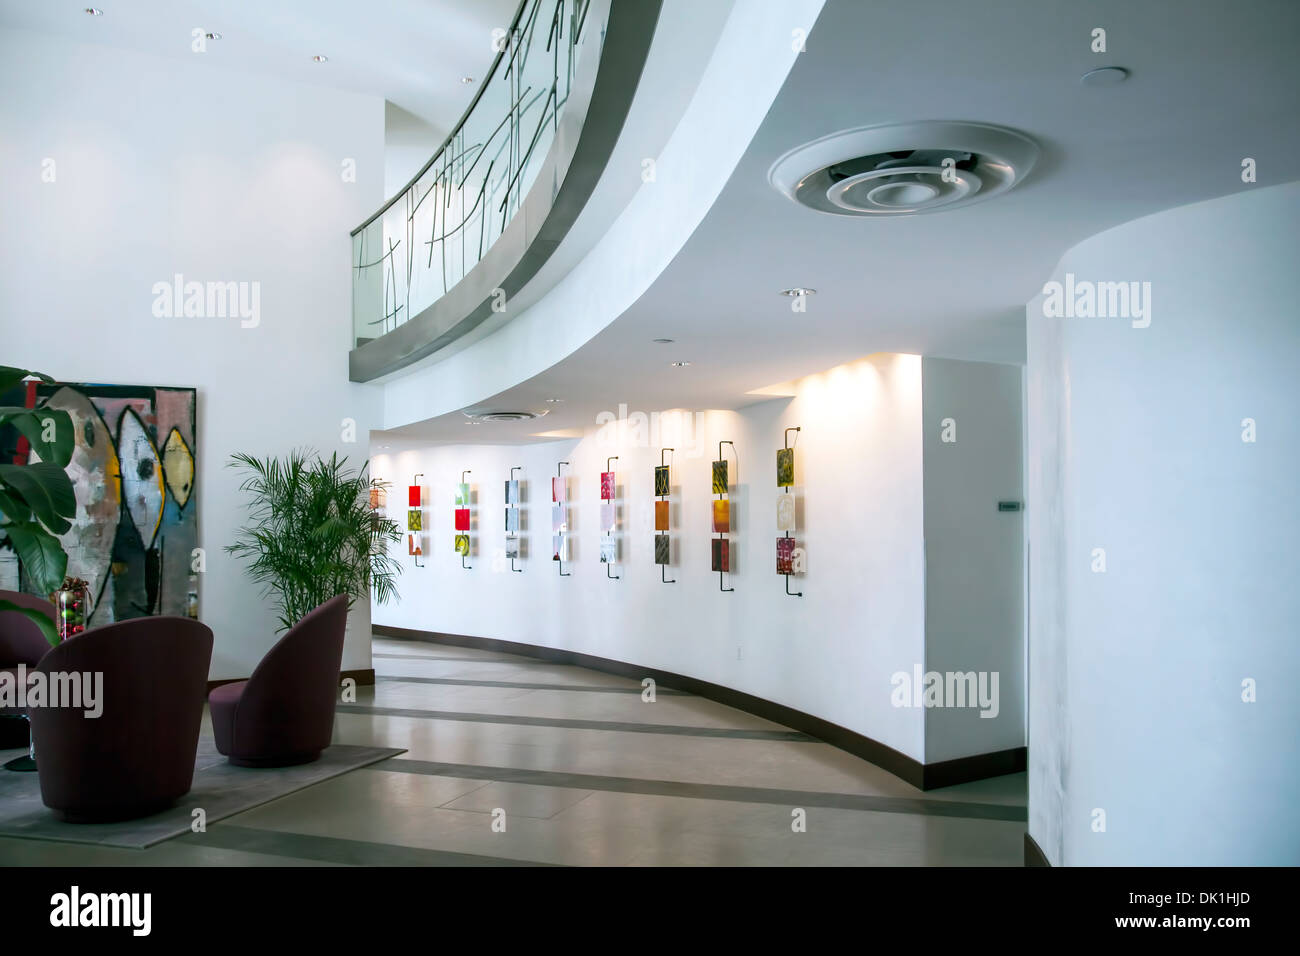 Art and artwork in lobby of the River House Condominiums along the New River in Fort Lauderdale, Florida, USA - Stock Image